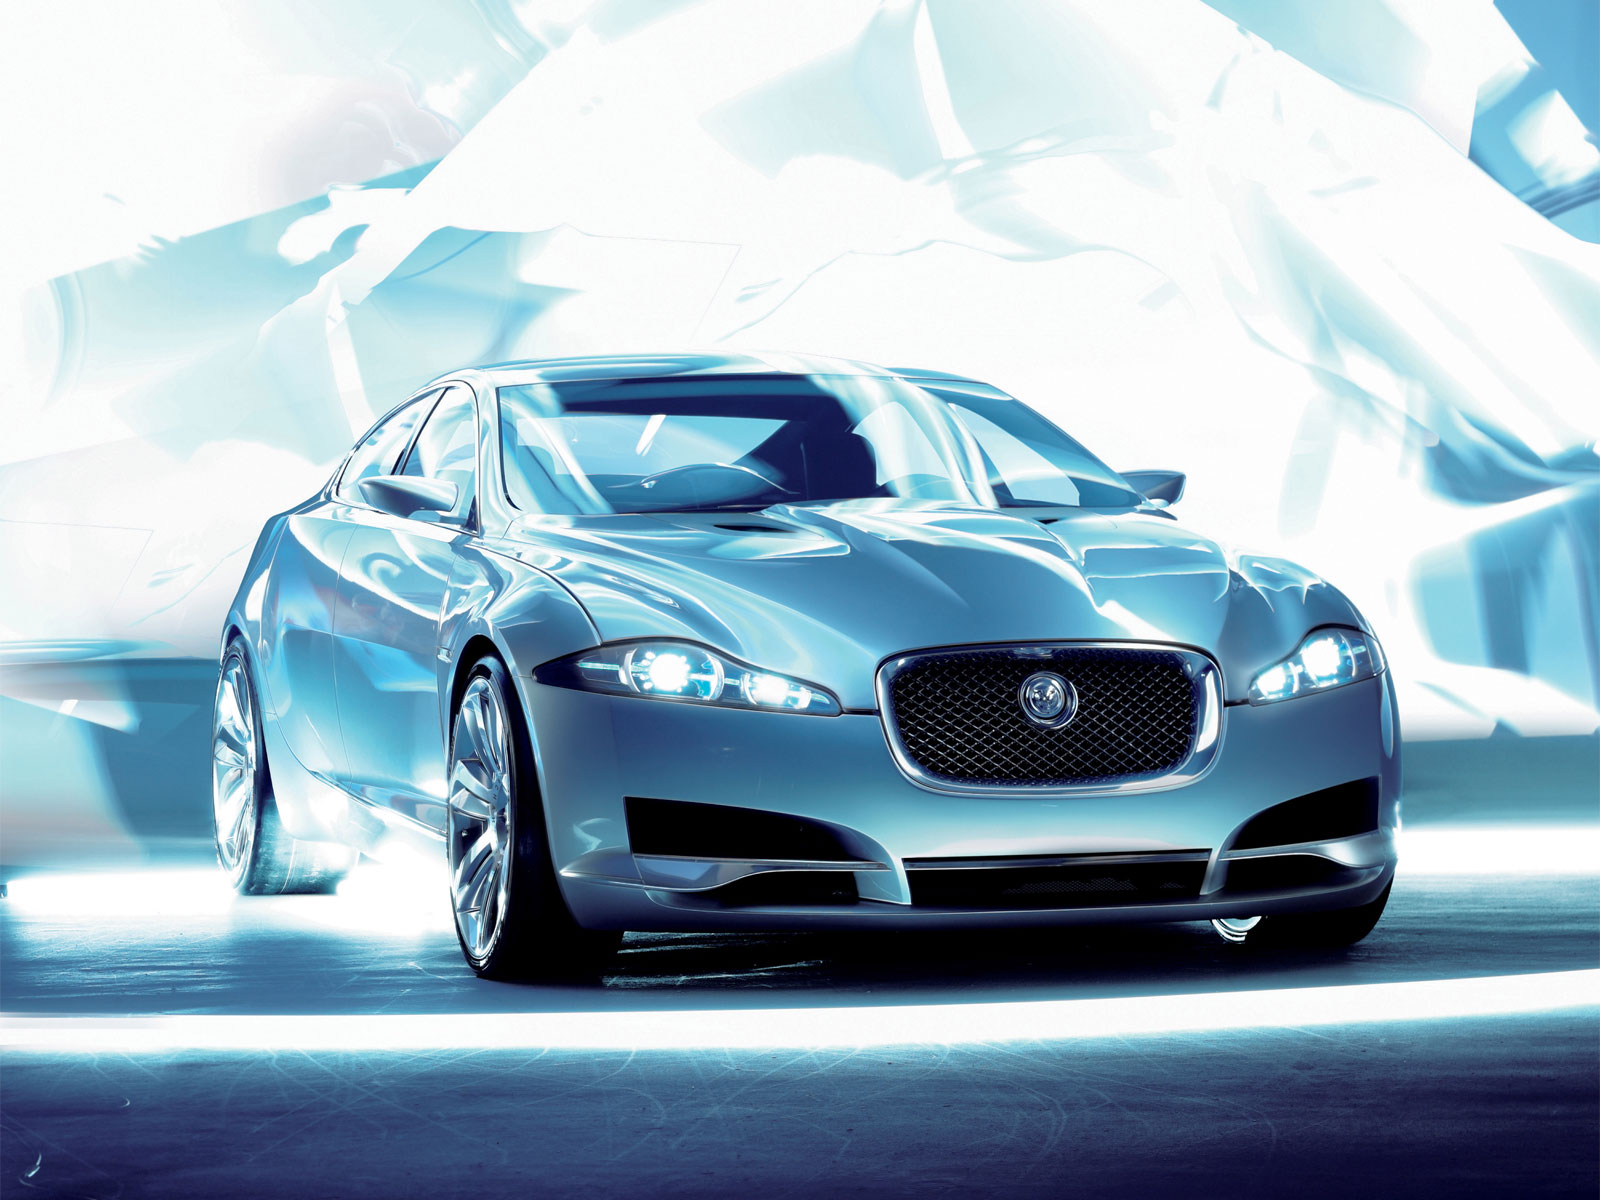 Merveilleux Jaguar Cars HD Wallpapers, Jaguar HD Wallpapers Free Download ~ Full HD  Wallpapers